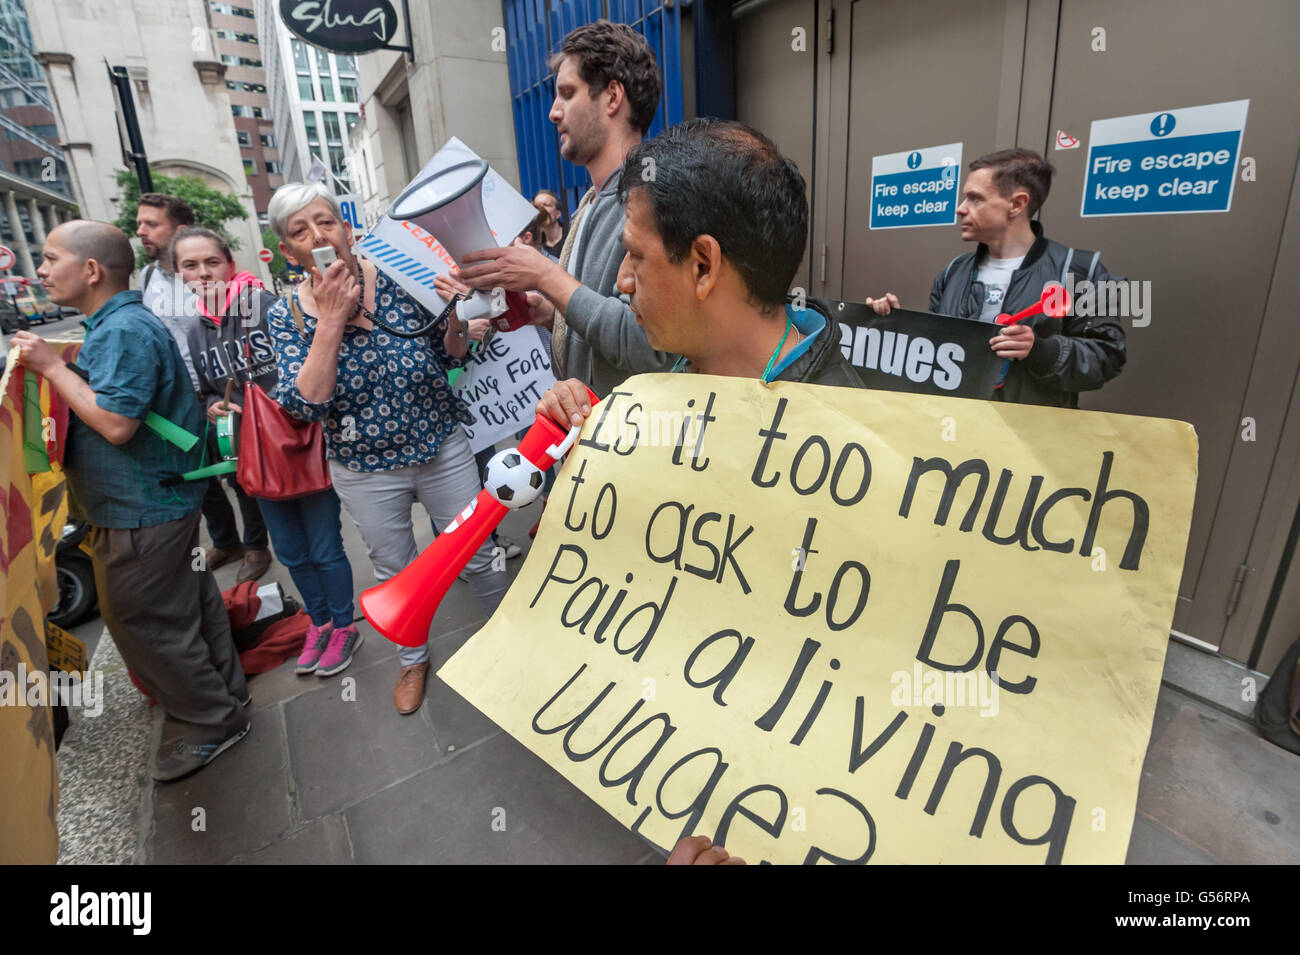 London, UK. June 21th, 2016. Candy Udwin, aPCS rep who led theiir strike at the Ntional Gallery, speaks at the rally Stock Photo